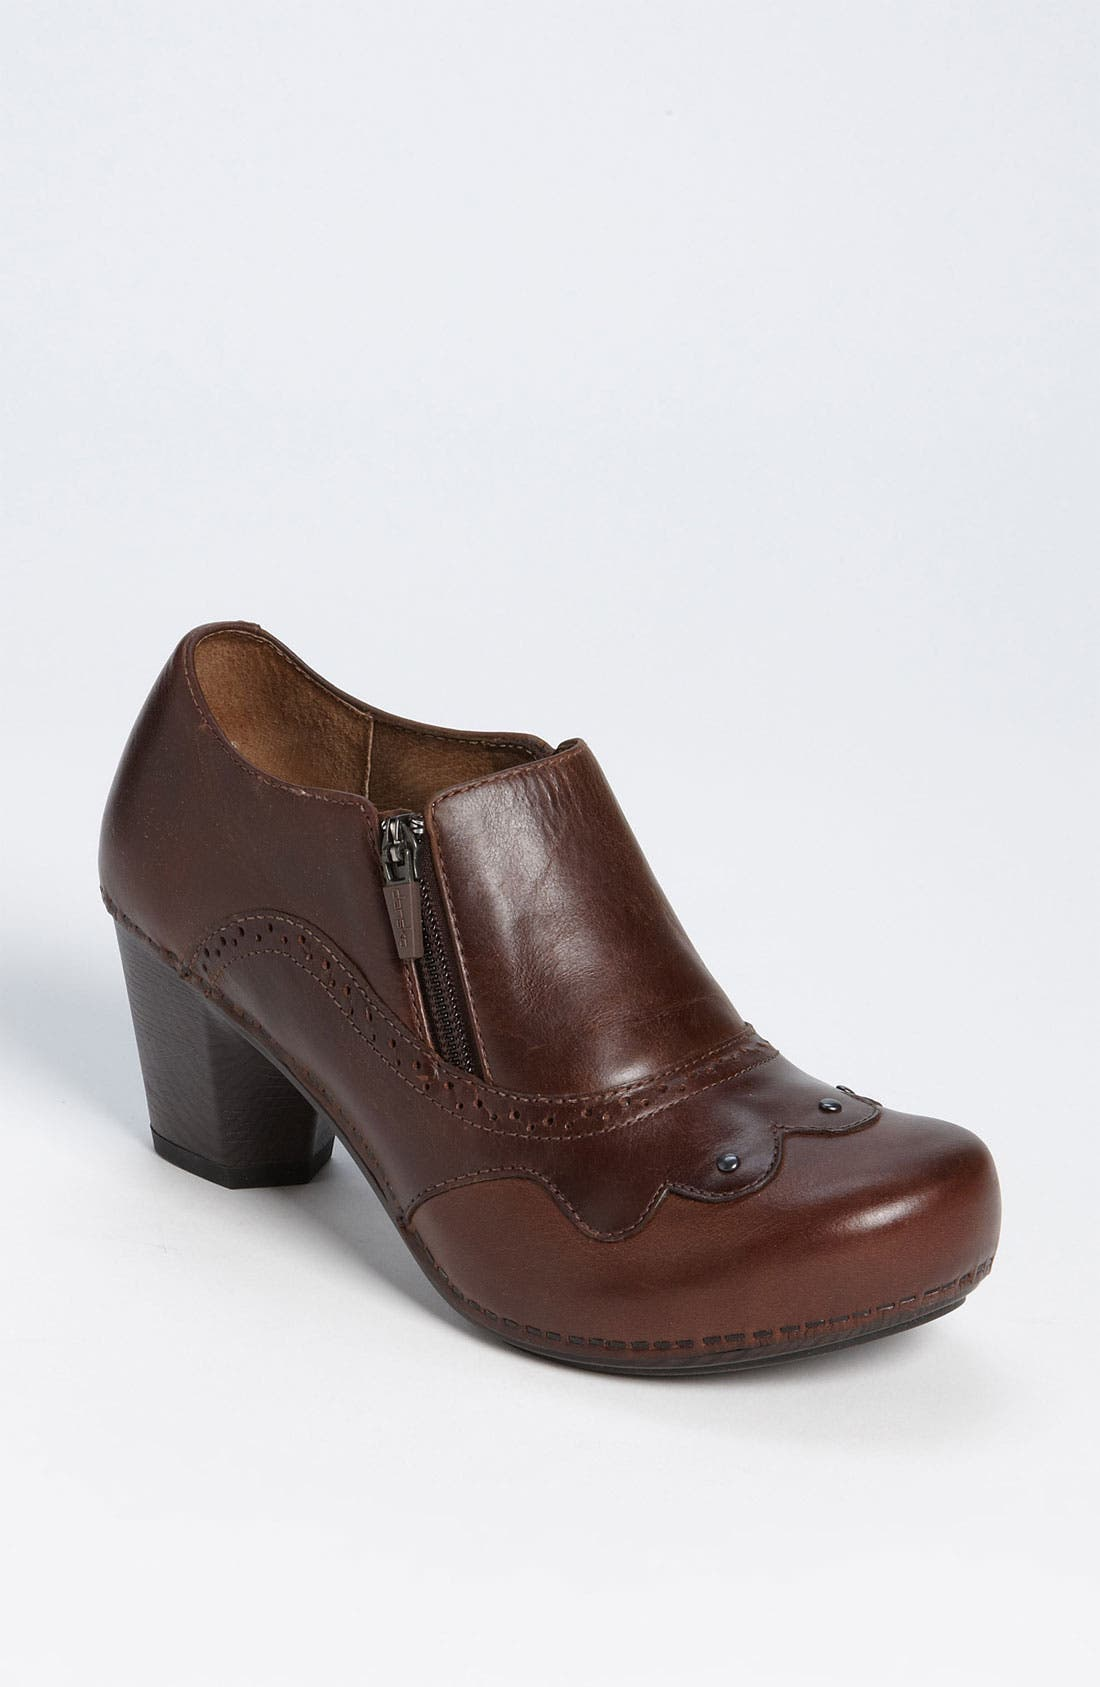 Alternate Image 1 Selected - Dansko 'Nancy' Pump